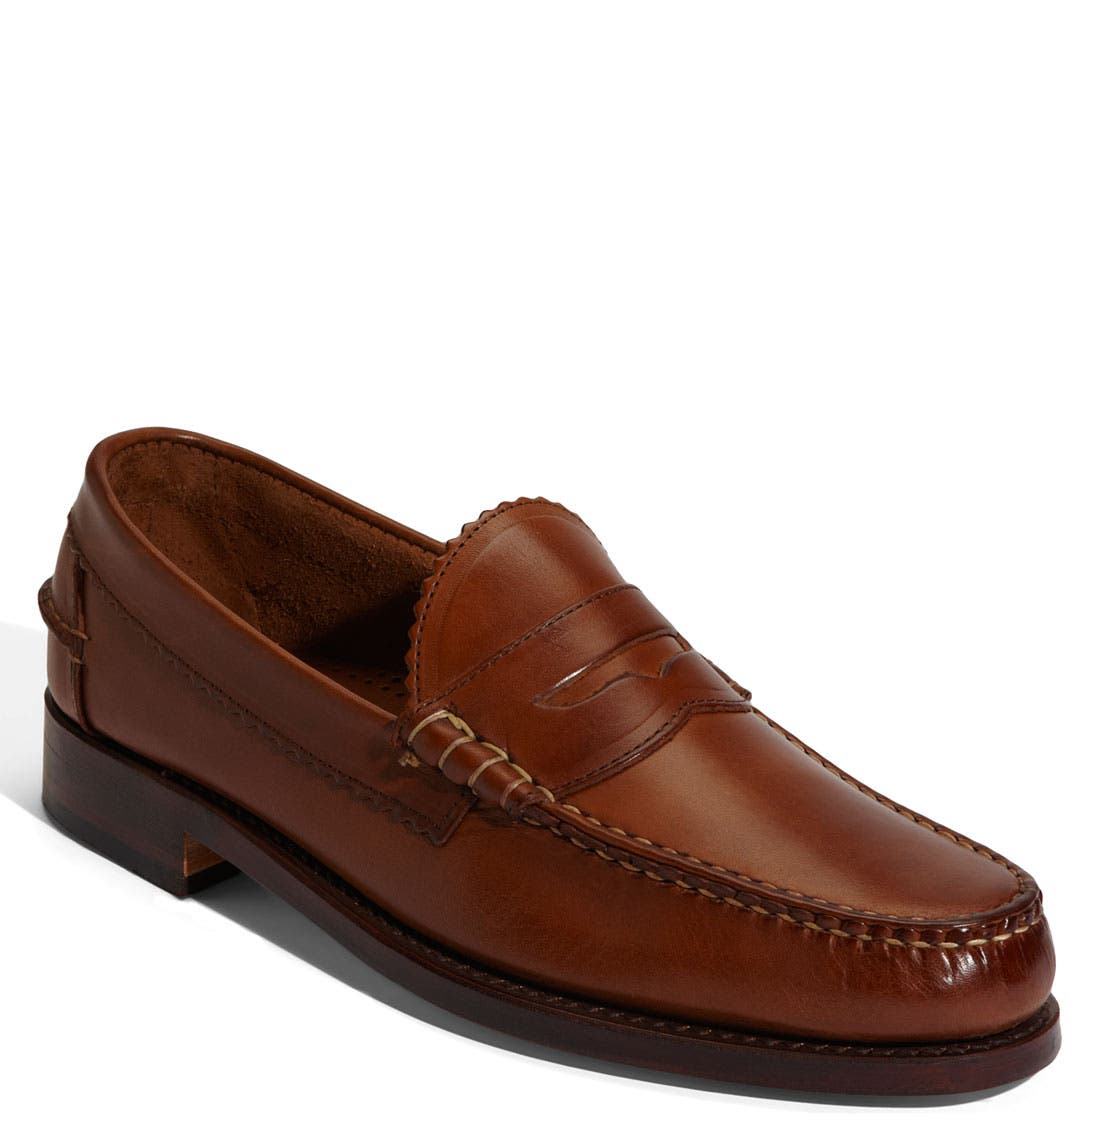 Alternate Image 1 Selected - Allen Edmonds 'Kenwood' Penny Loafer (Men)